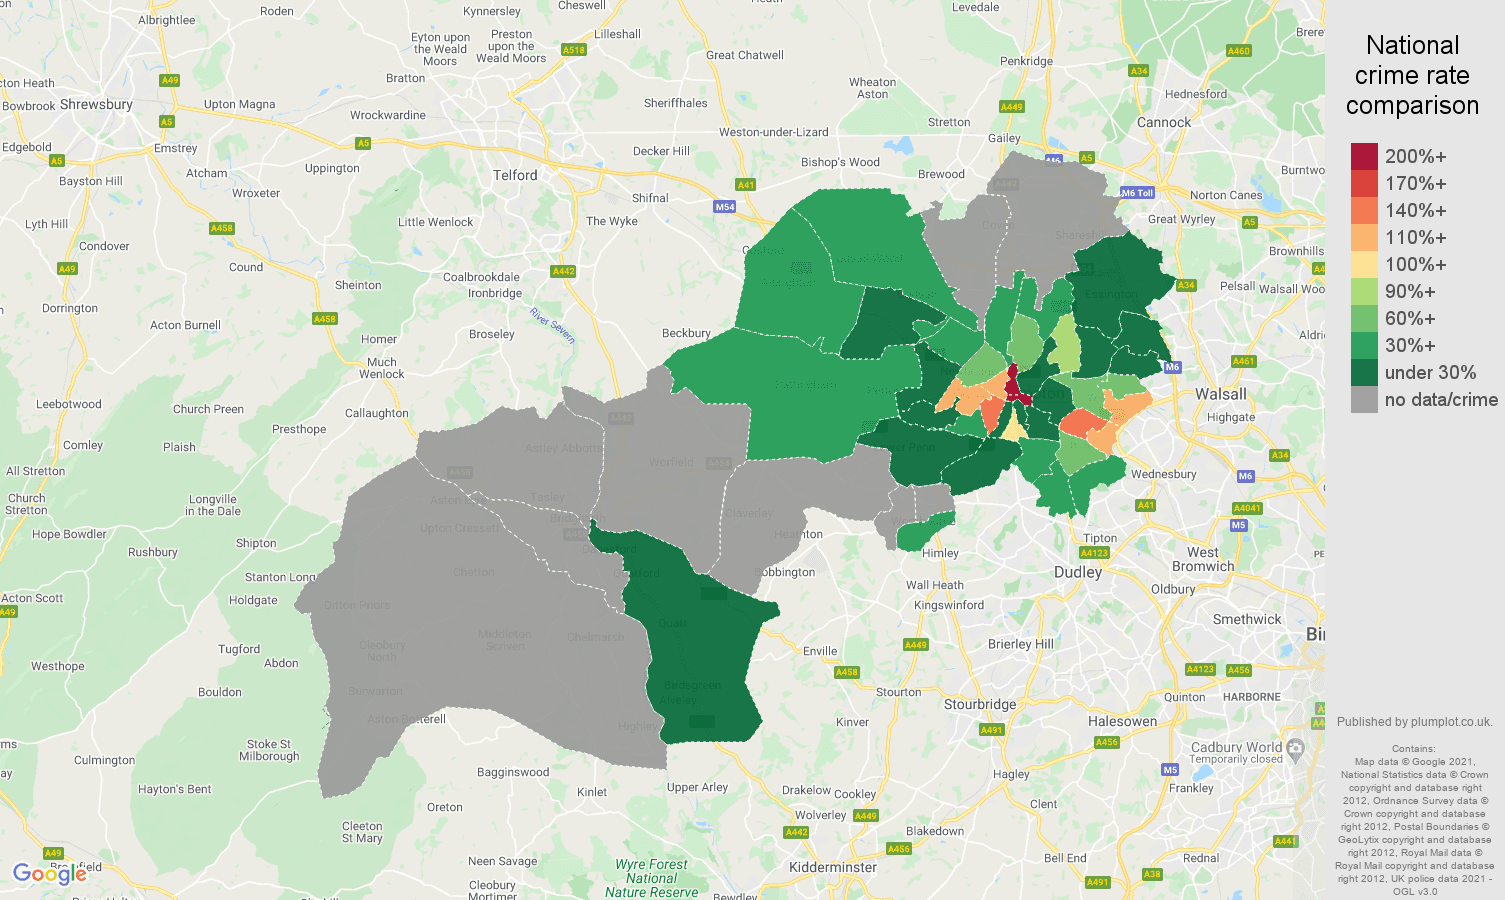 Wolverhampton bicycle theft crime rate comparison map